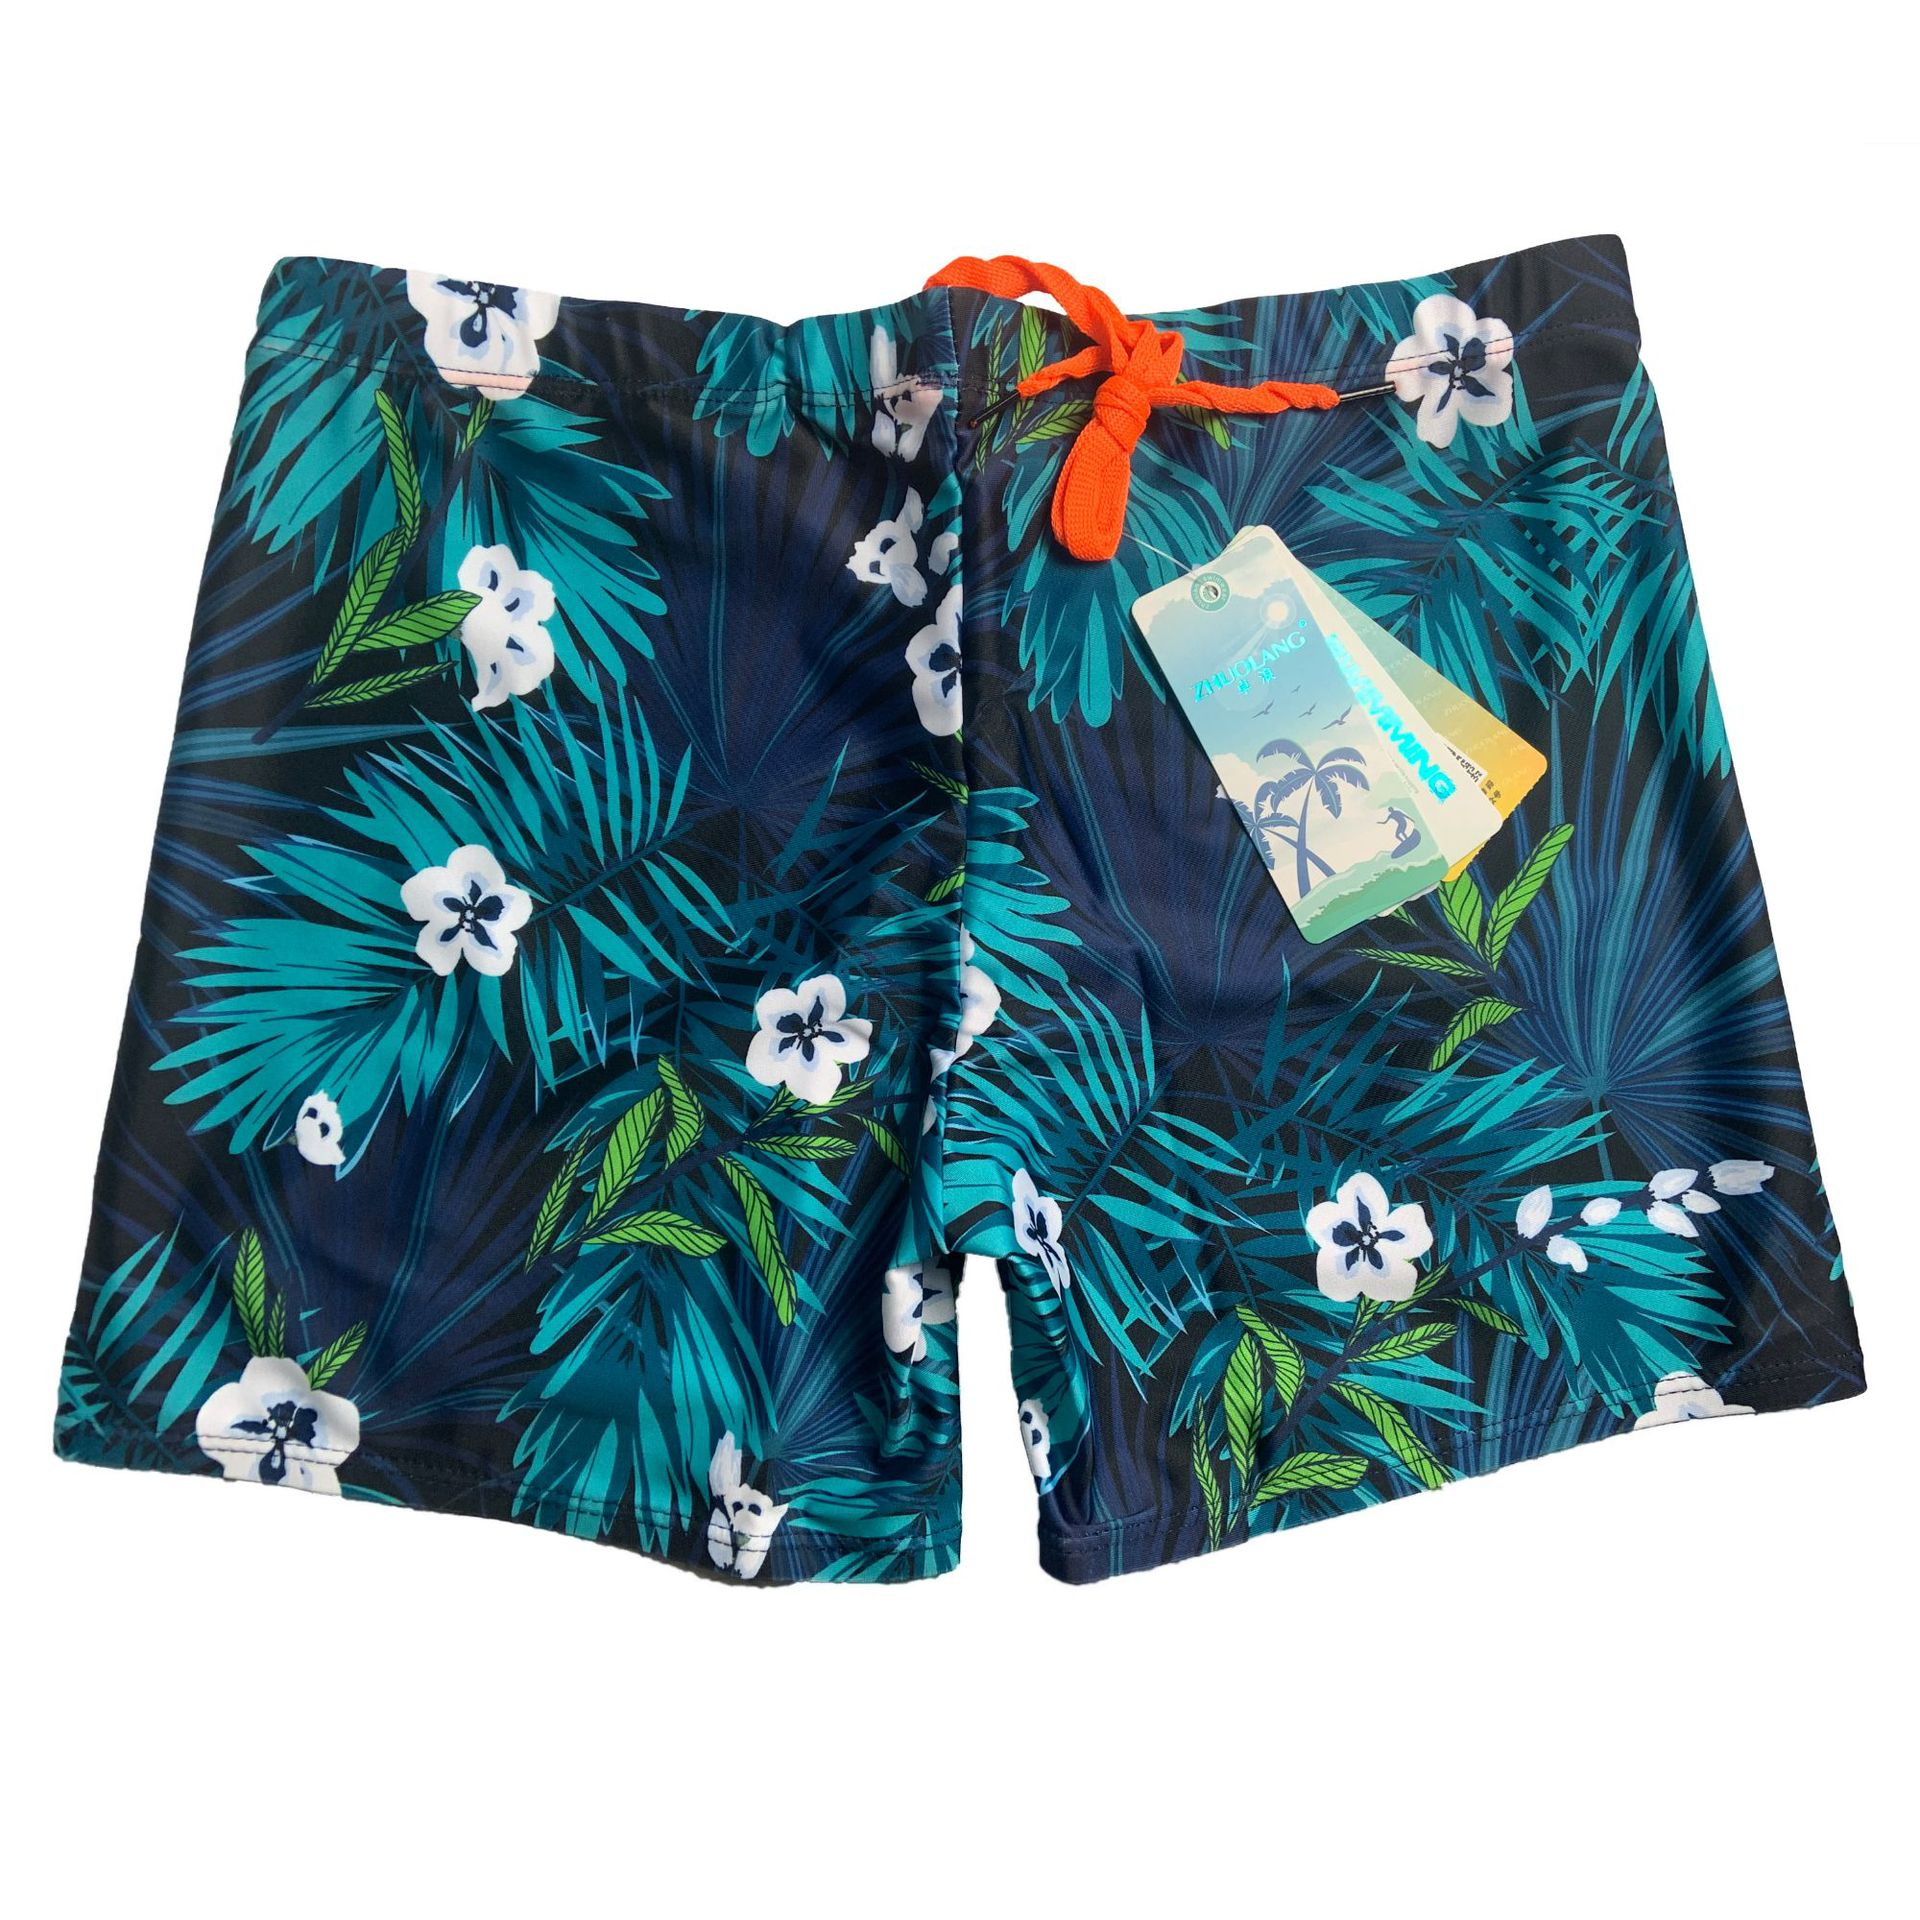 Fashion Full Printed Pattern Men Urethane Elastic Fibre Swimming Trunks Short Men's Swimming Trunks Four Colors Selectable Brand